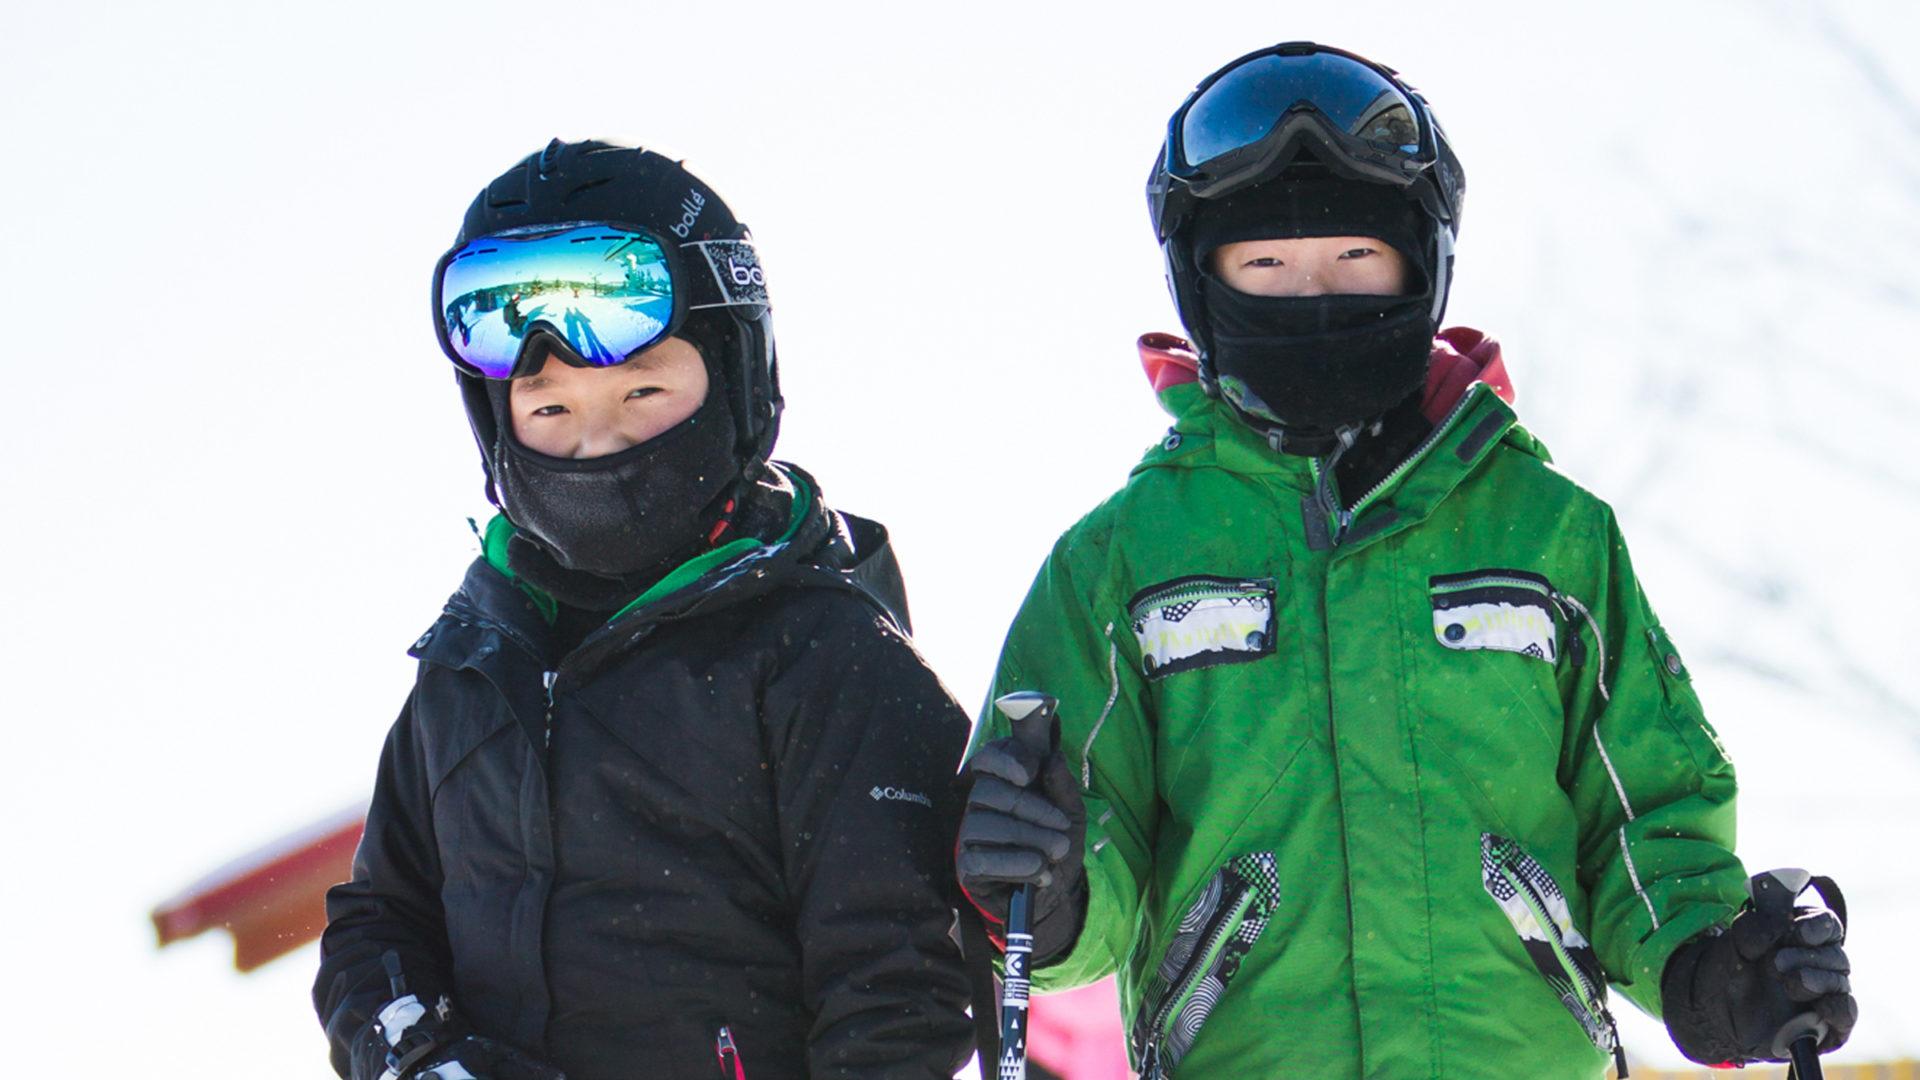 Thinking of trying skiing or snowboarding for the first time? At Horseshoe Resort we make it easy for you to turn that curiosity into a life-long passion!